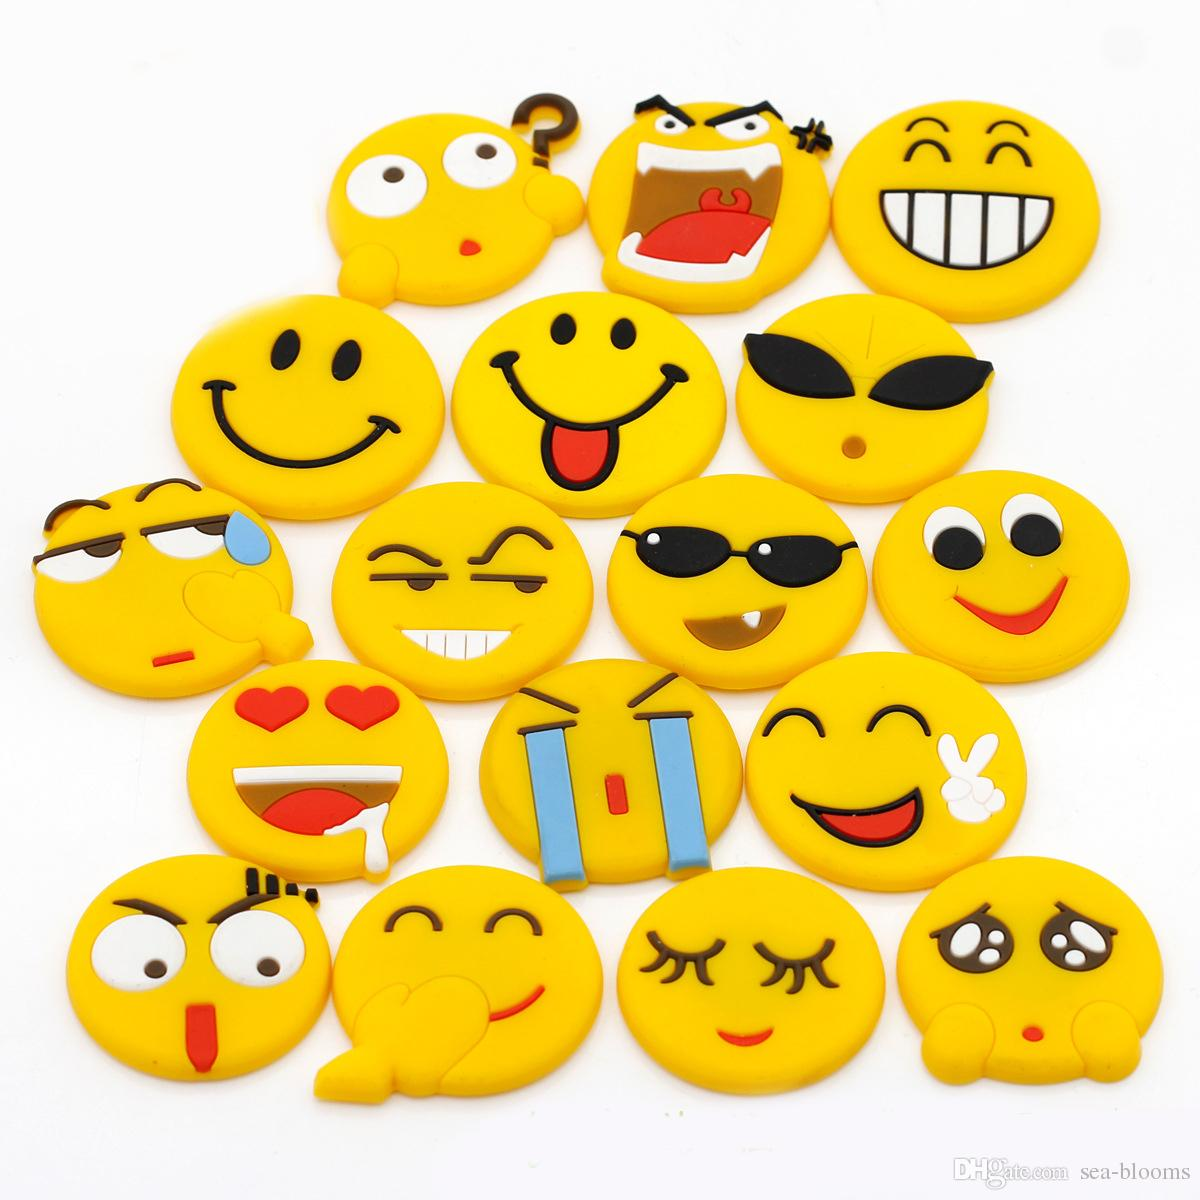 funny emoji art copy and paste - Hizir kaptanband co